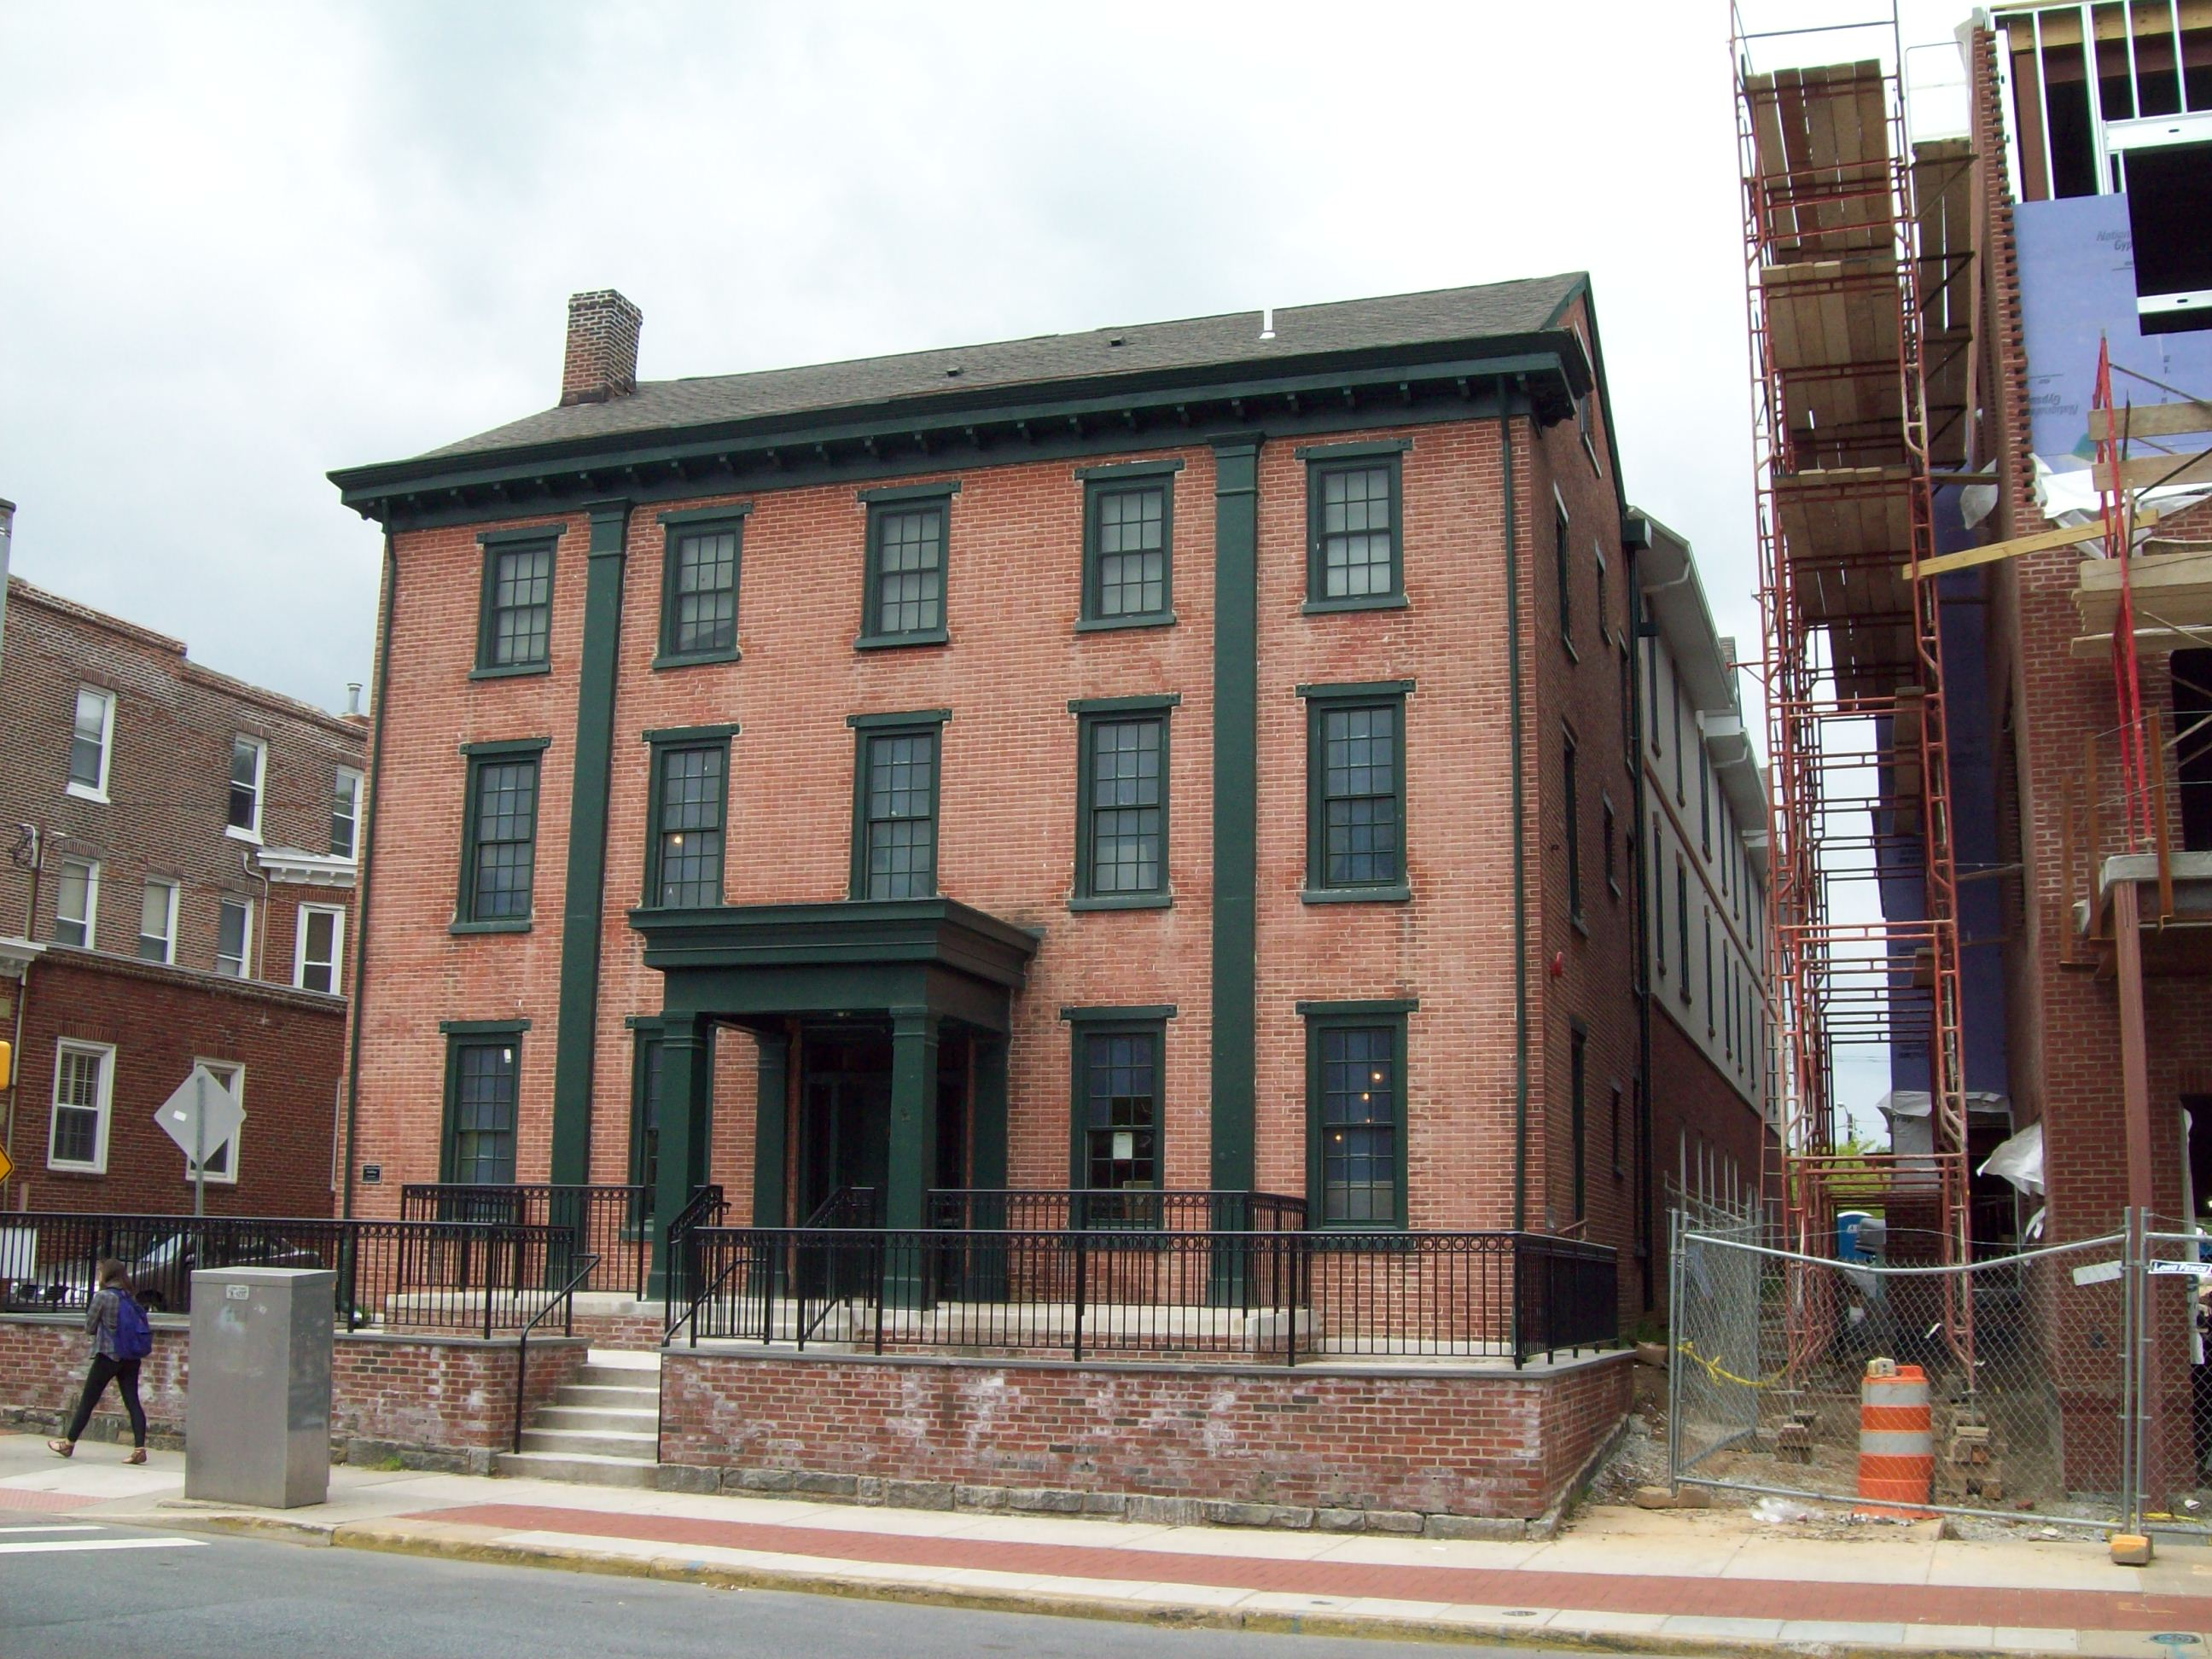 Historic Brick Building Spring St Near Lafayette New York City